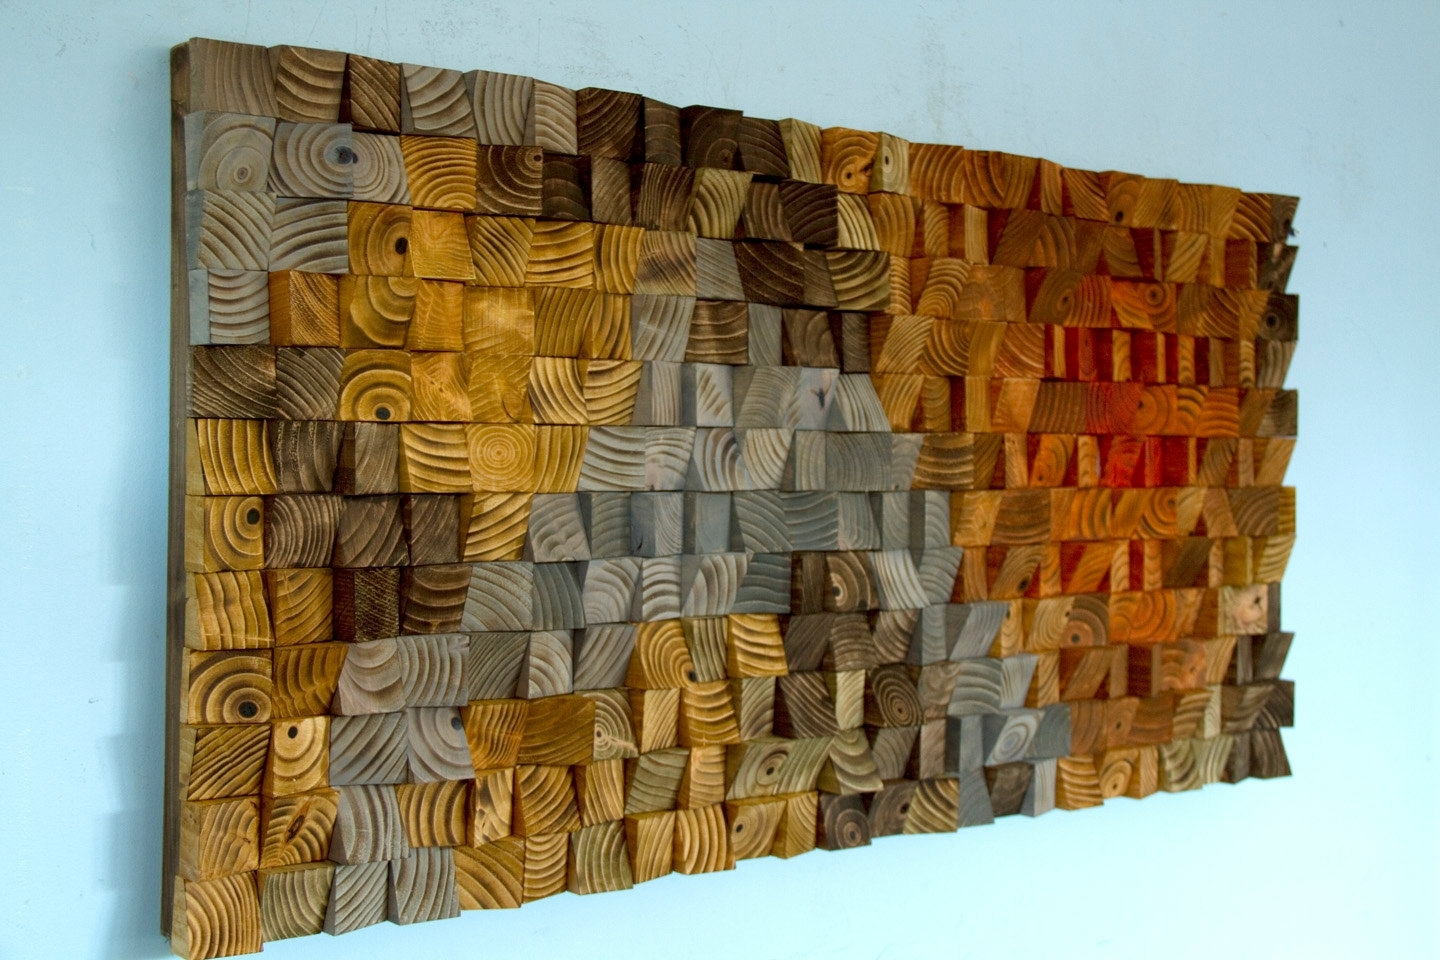 Well Known Rustic Wood Wall Art, Wood Wall Sculpture, Abstract Wood Art – Art Pertaining To Wood Wall Art (View 2 of 15)